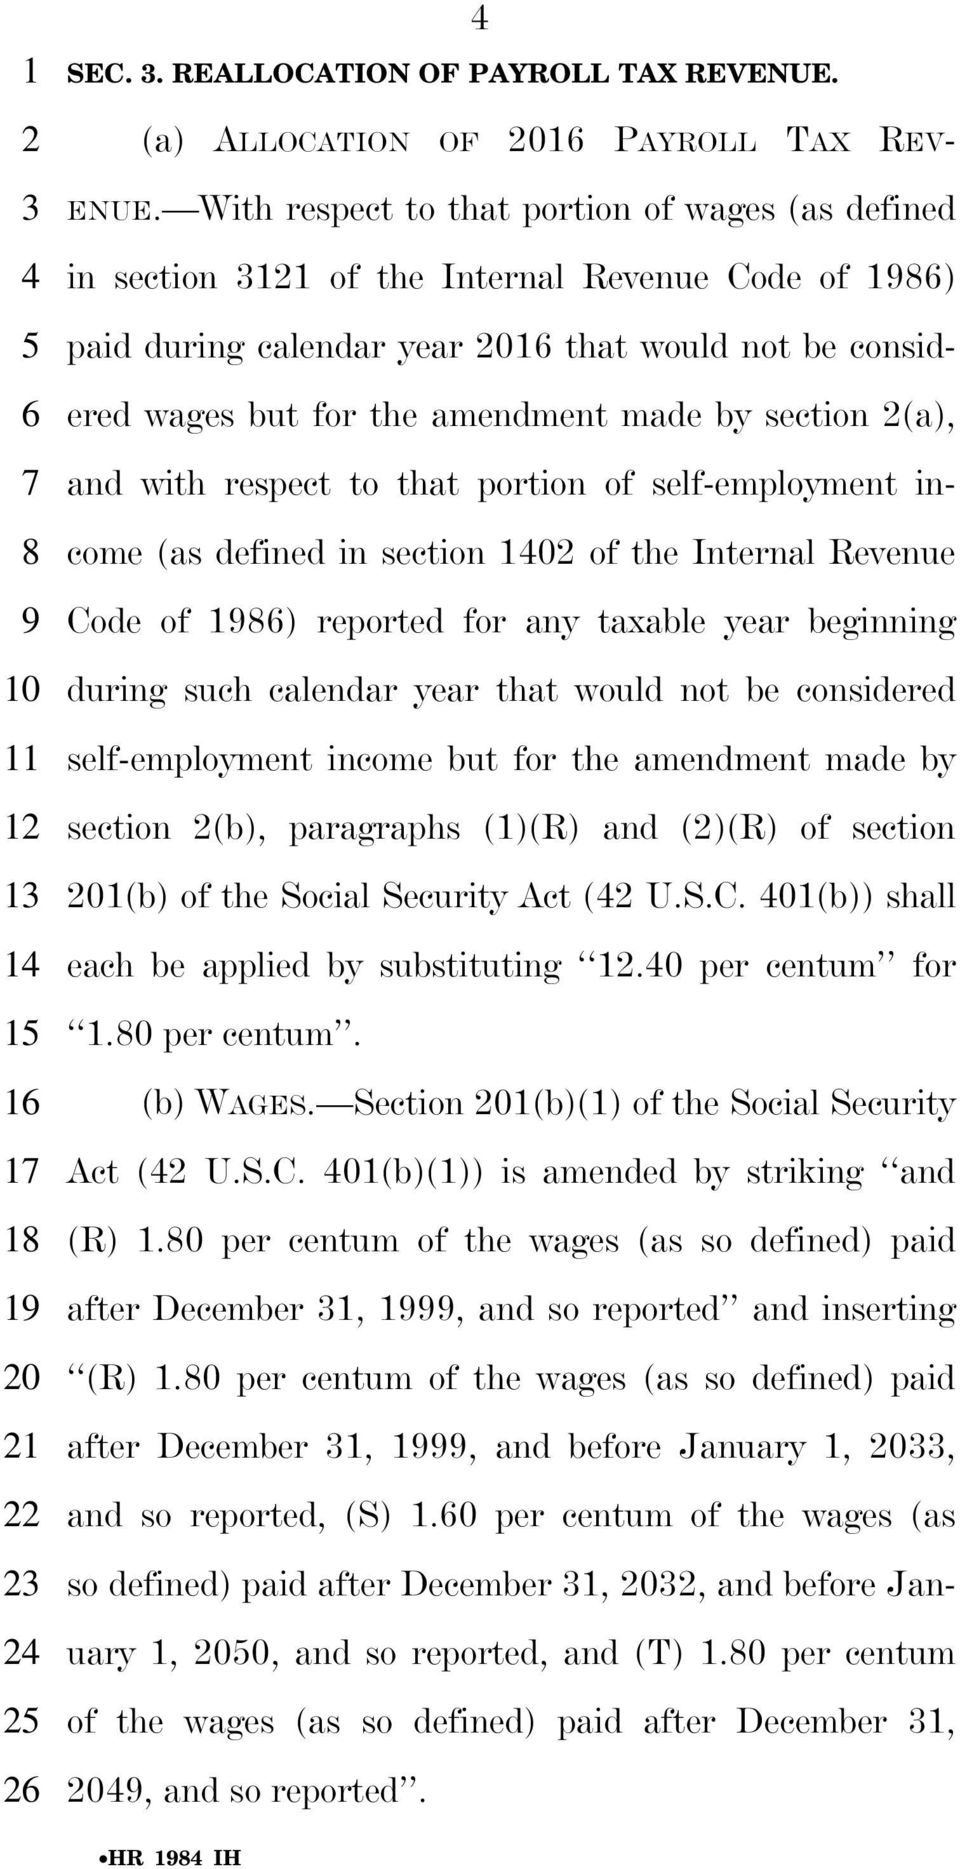 2(a), and with respect to that portion of self-employment income (as defined in section 02 of the Internal Revenue Code of 8) reported for any taxable year beginning during such calendar year that